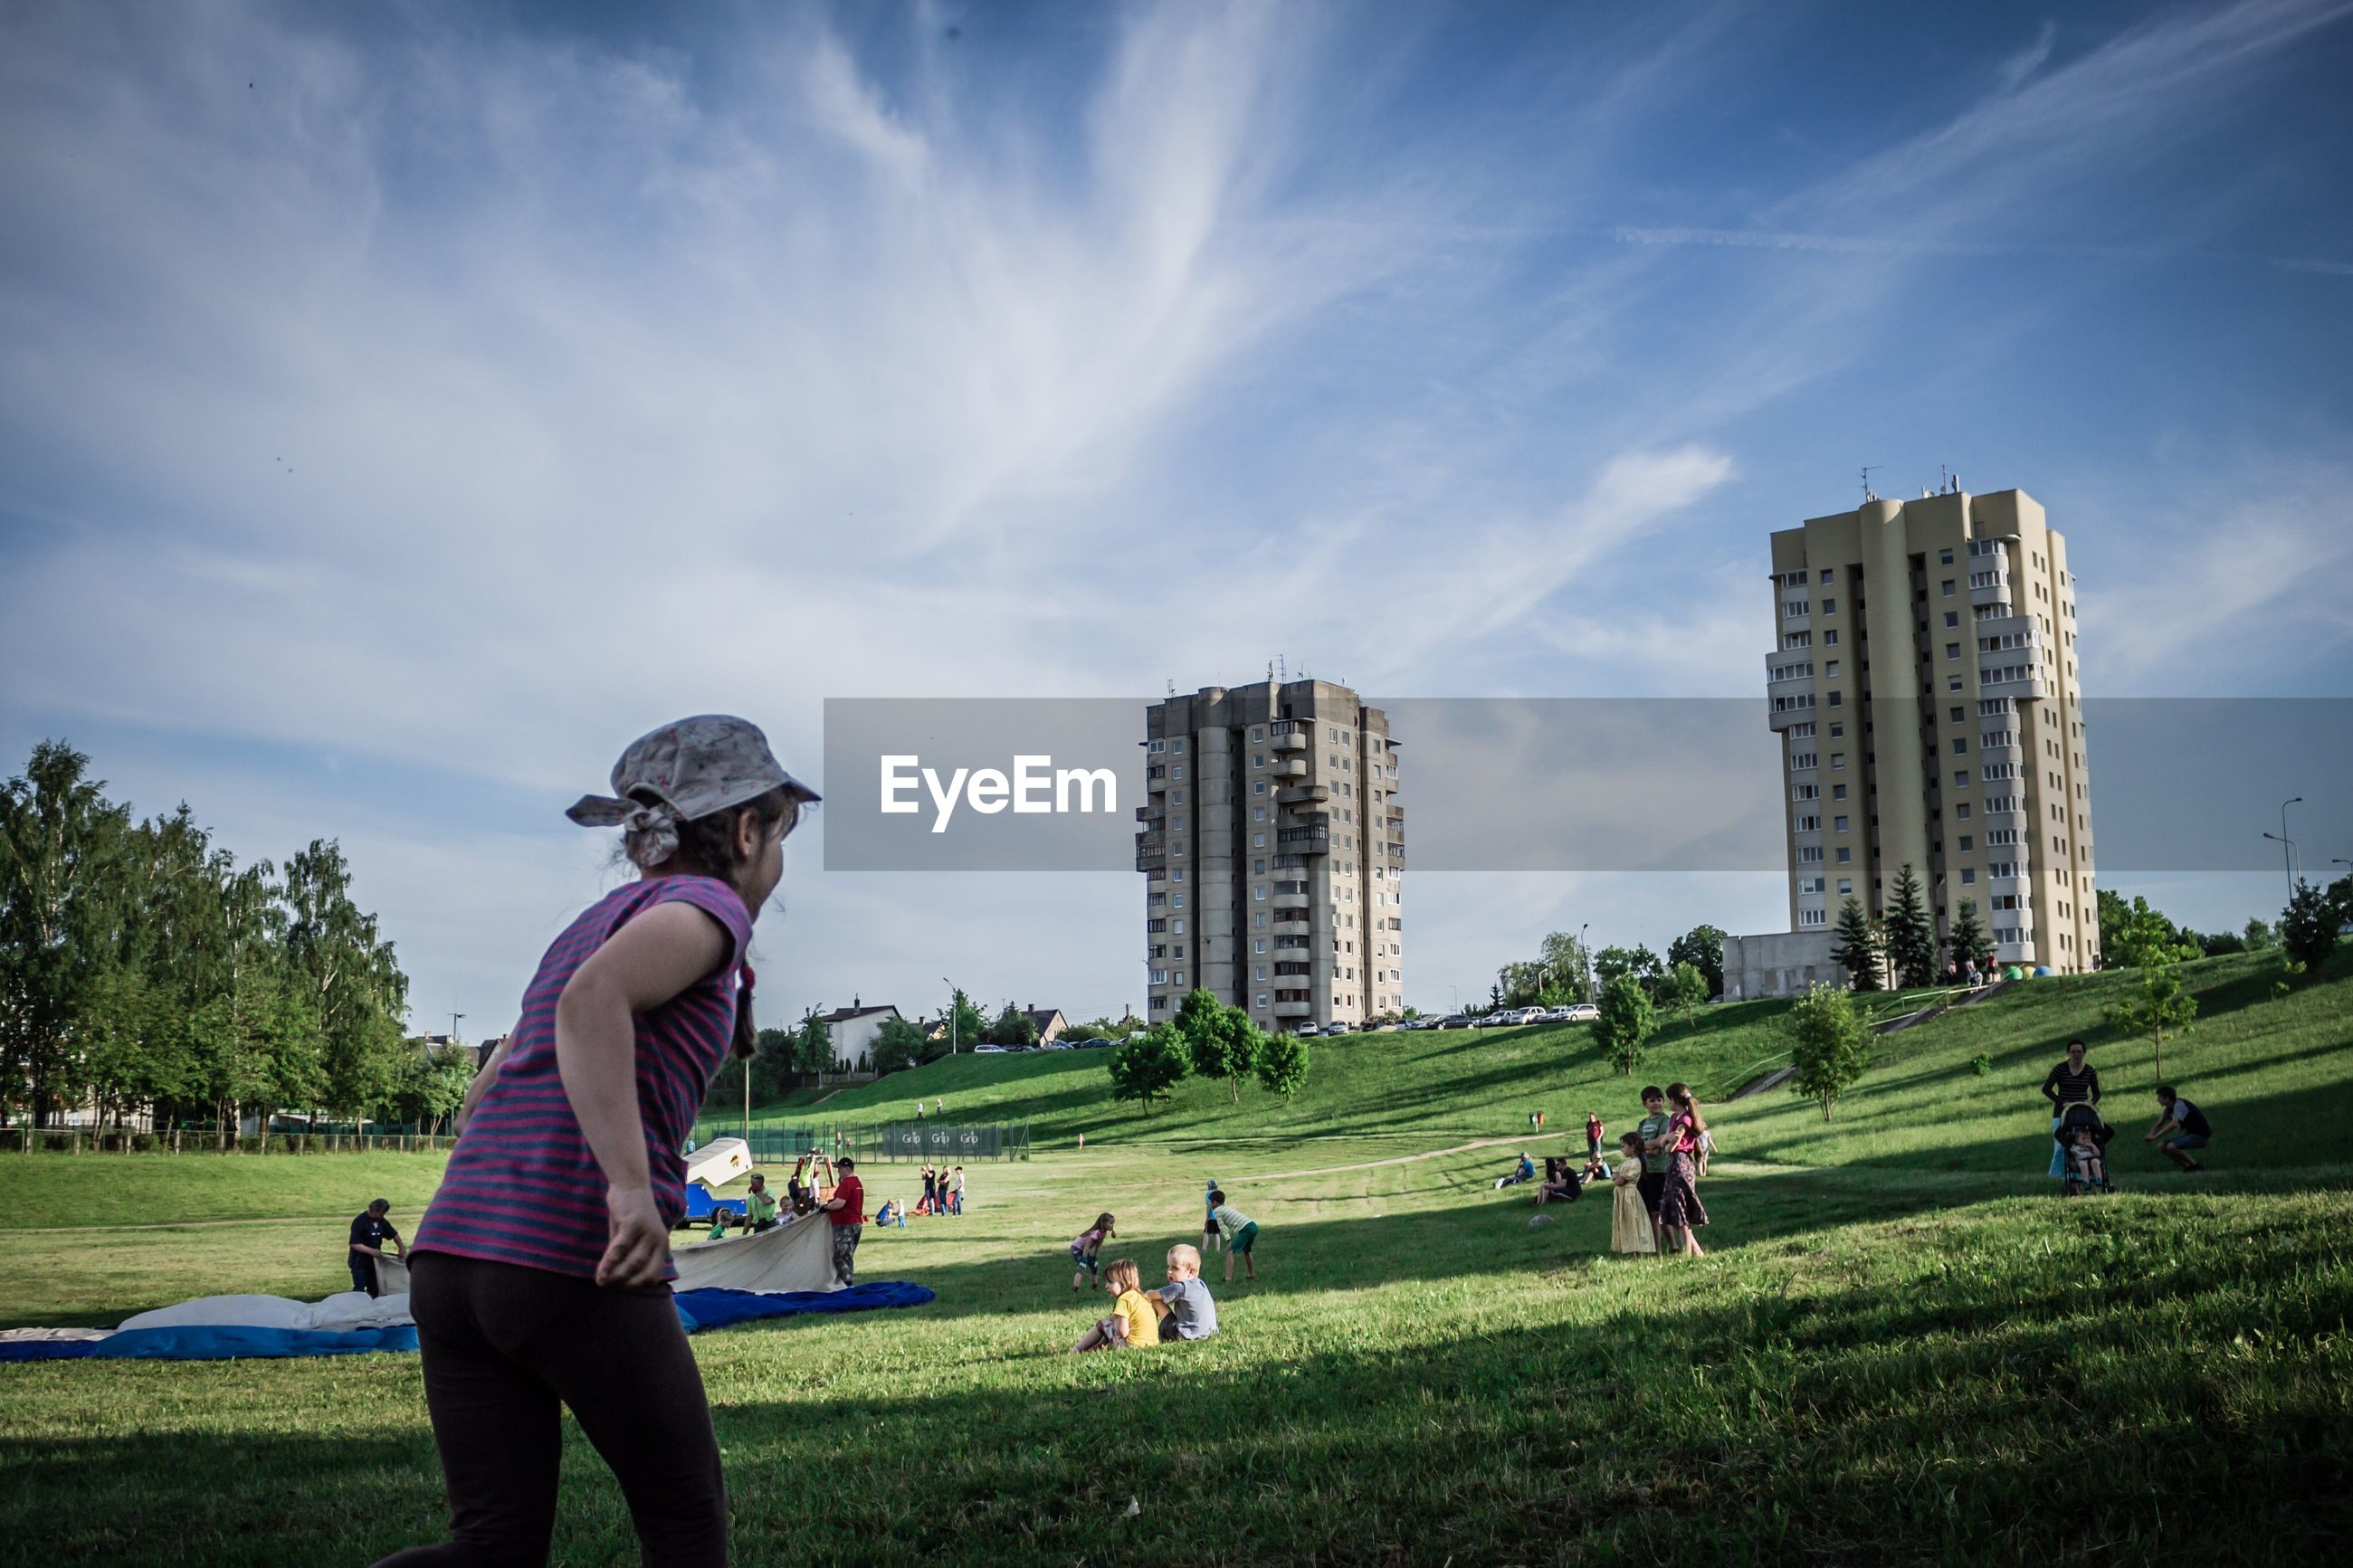 grass, real people, leisure activity, sky, cloud - sky, lifestyles, playing, day, field, green color, architecture, outdoors, men, casual clothing, golf, golf course, built structure, building exterior, growth, nature, togetherness, women, golf club, green - golf course, golfer, sportsman, people